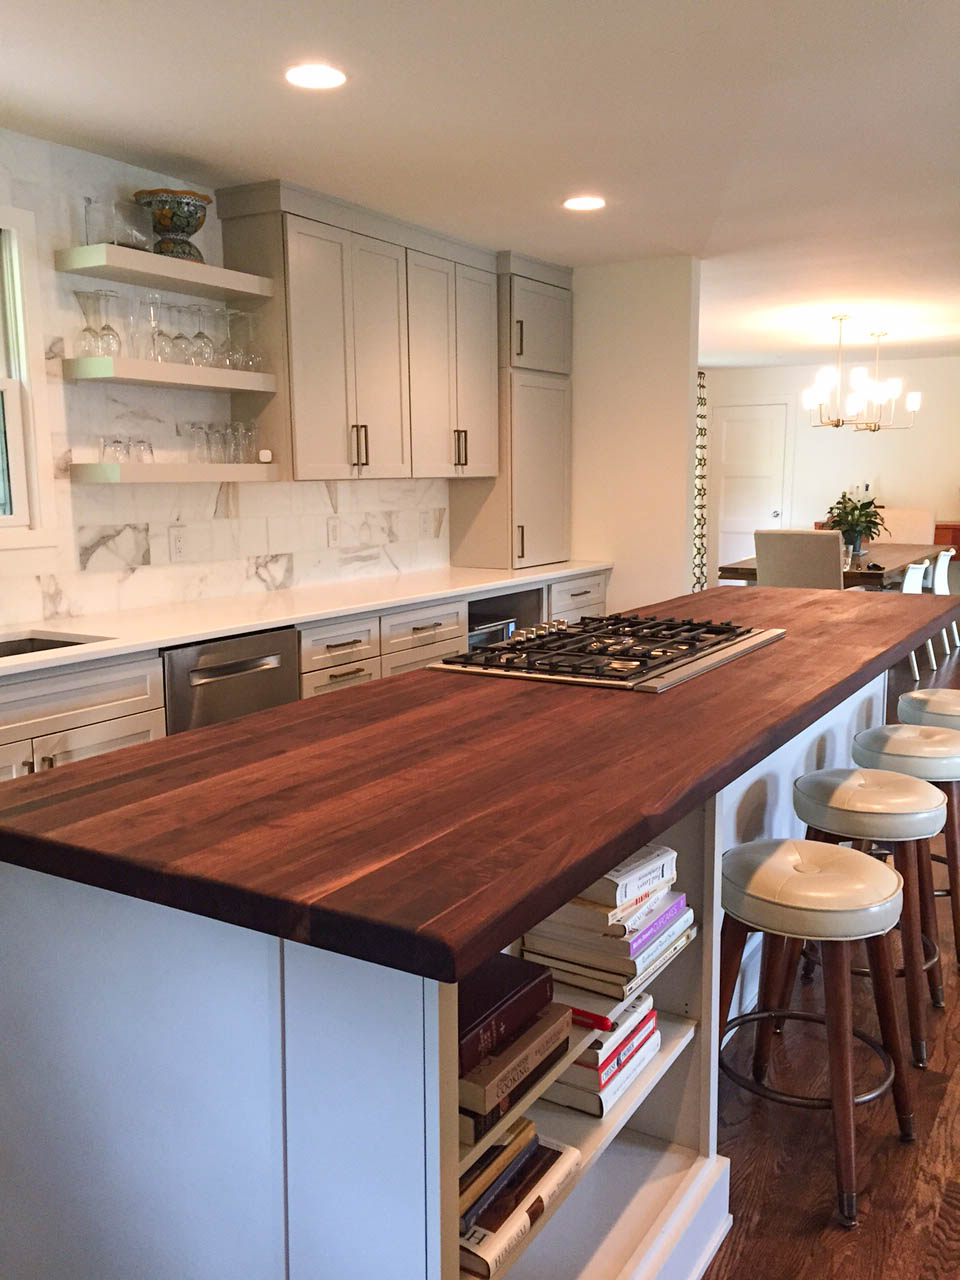 Best Finish For Butcher Block Countertop: Custom Design Wood Counters